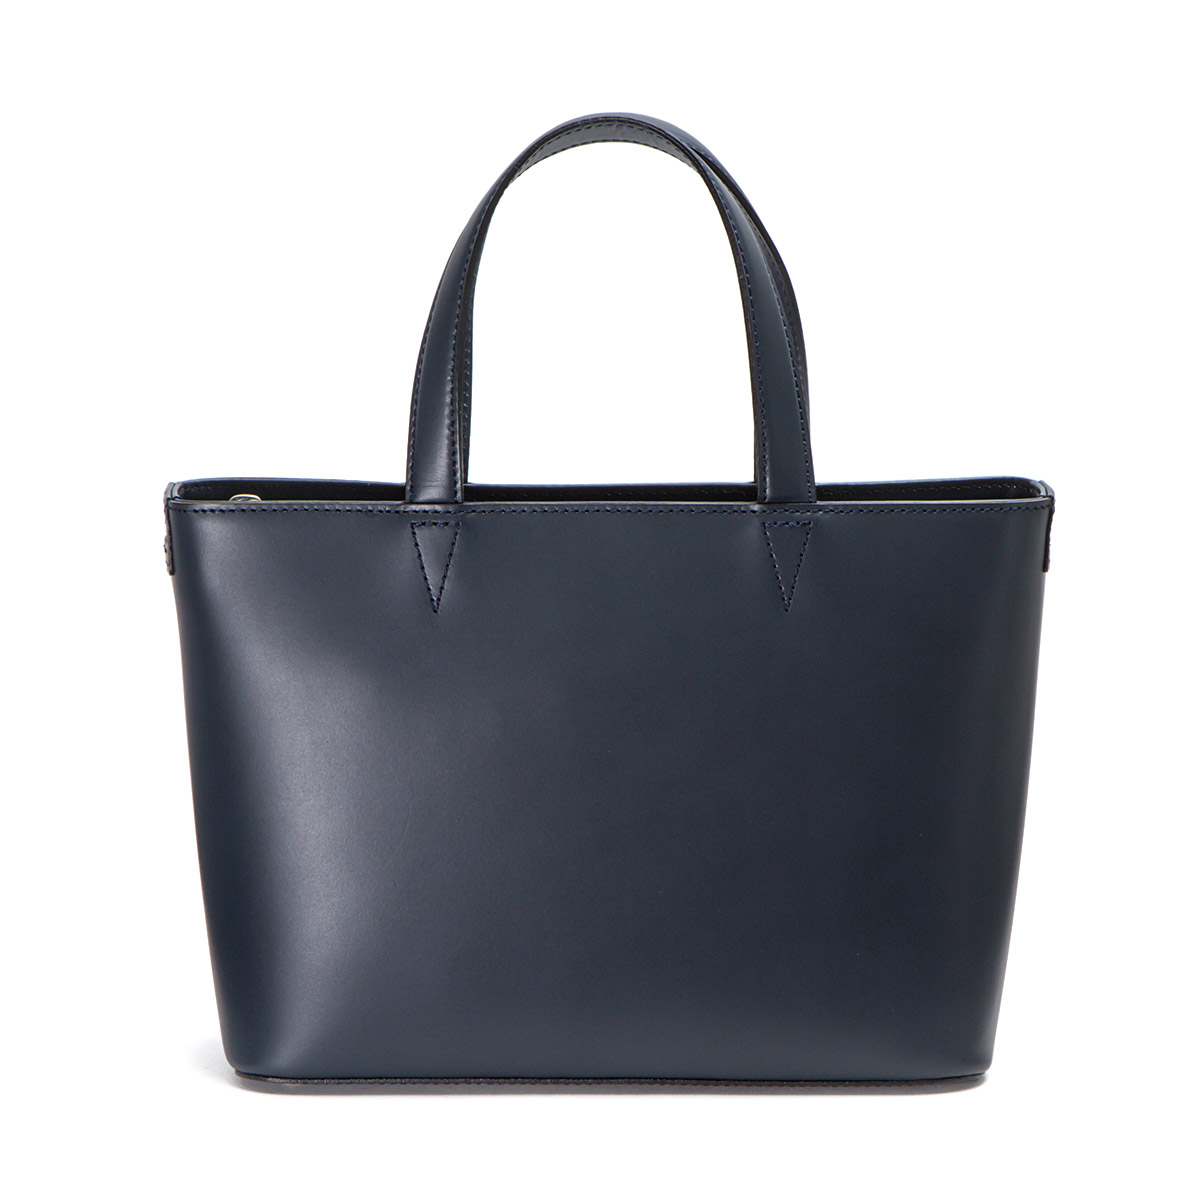 HERGOPOCHエルゴポック ミニトートバッグ ワキシングレザー Waxed Leather(06 Series) Mini Tote Bag HERGOPOCH 06-MIT